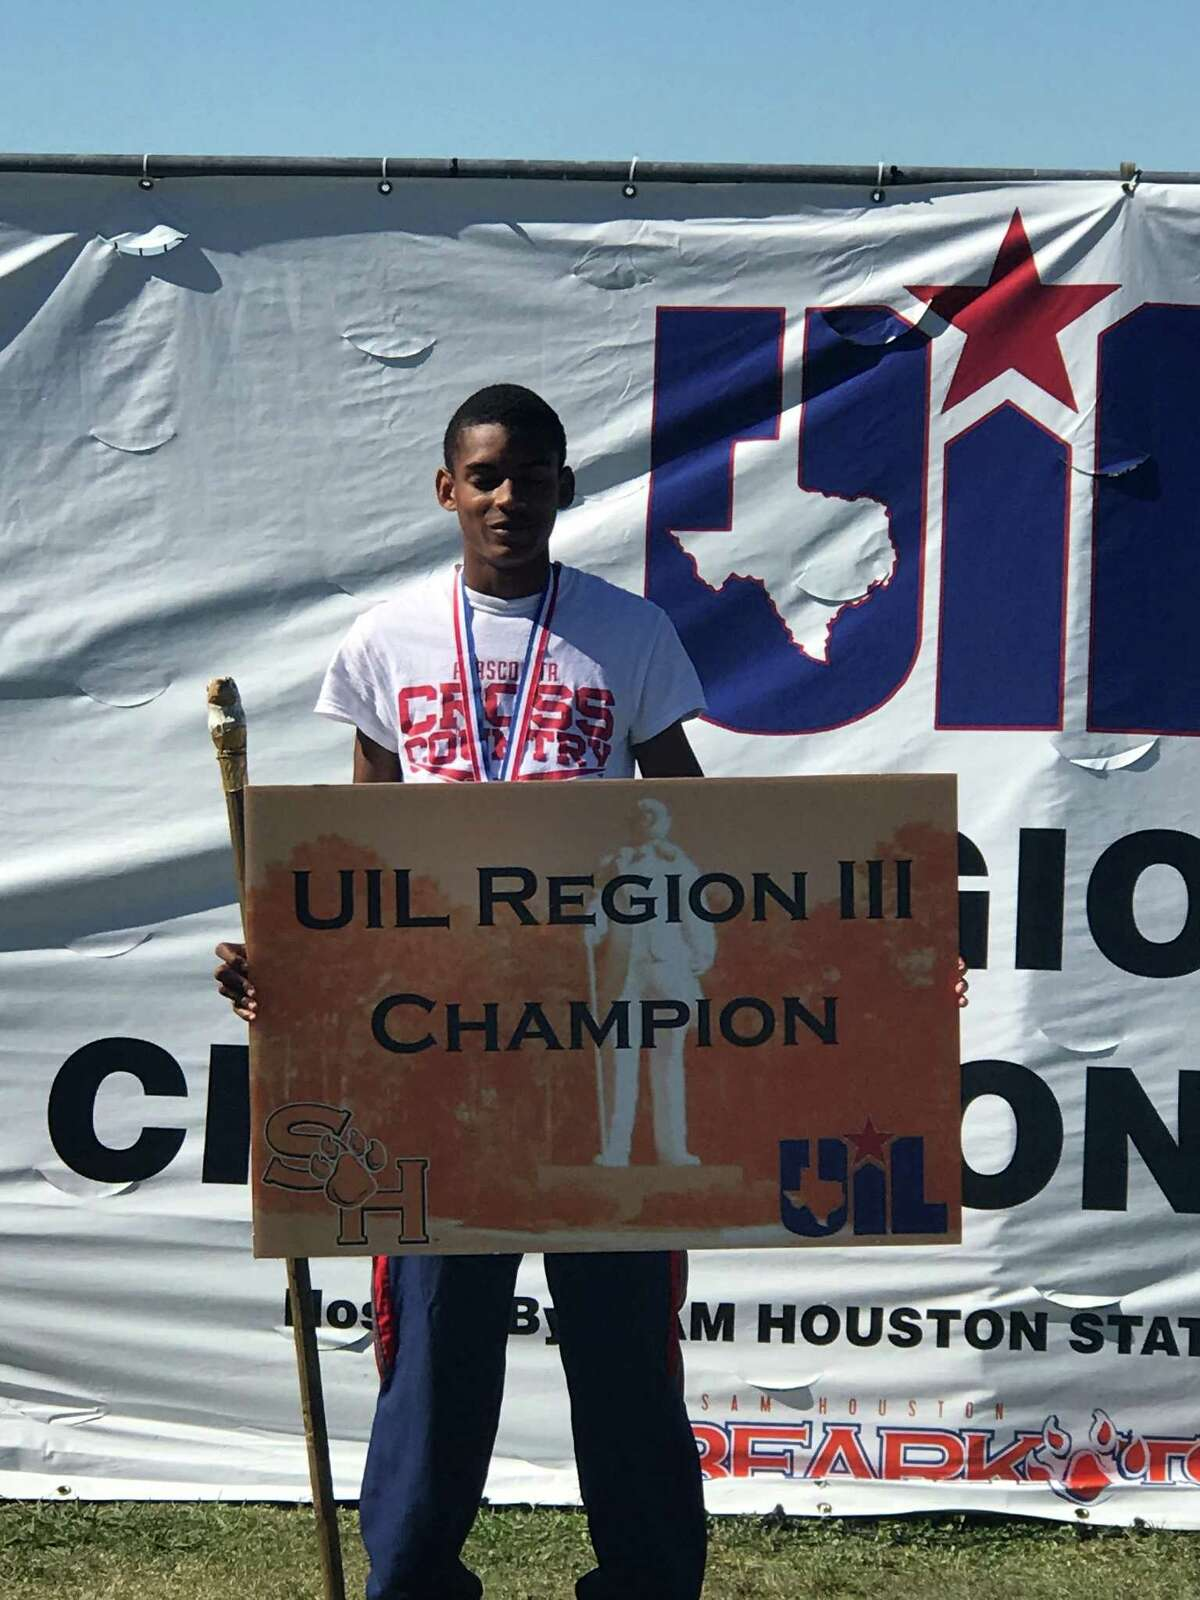 Atascocita senior Worthington Moore won the region meet and is advancing to the state meet for the second consecutive year